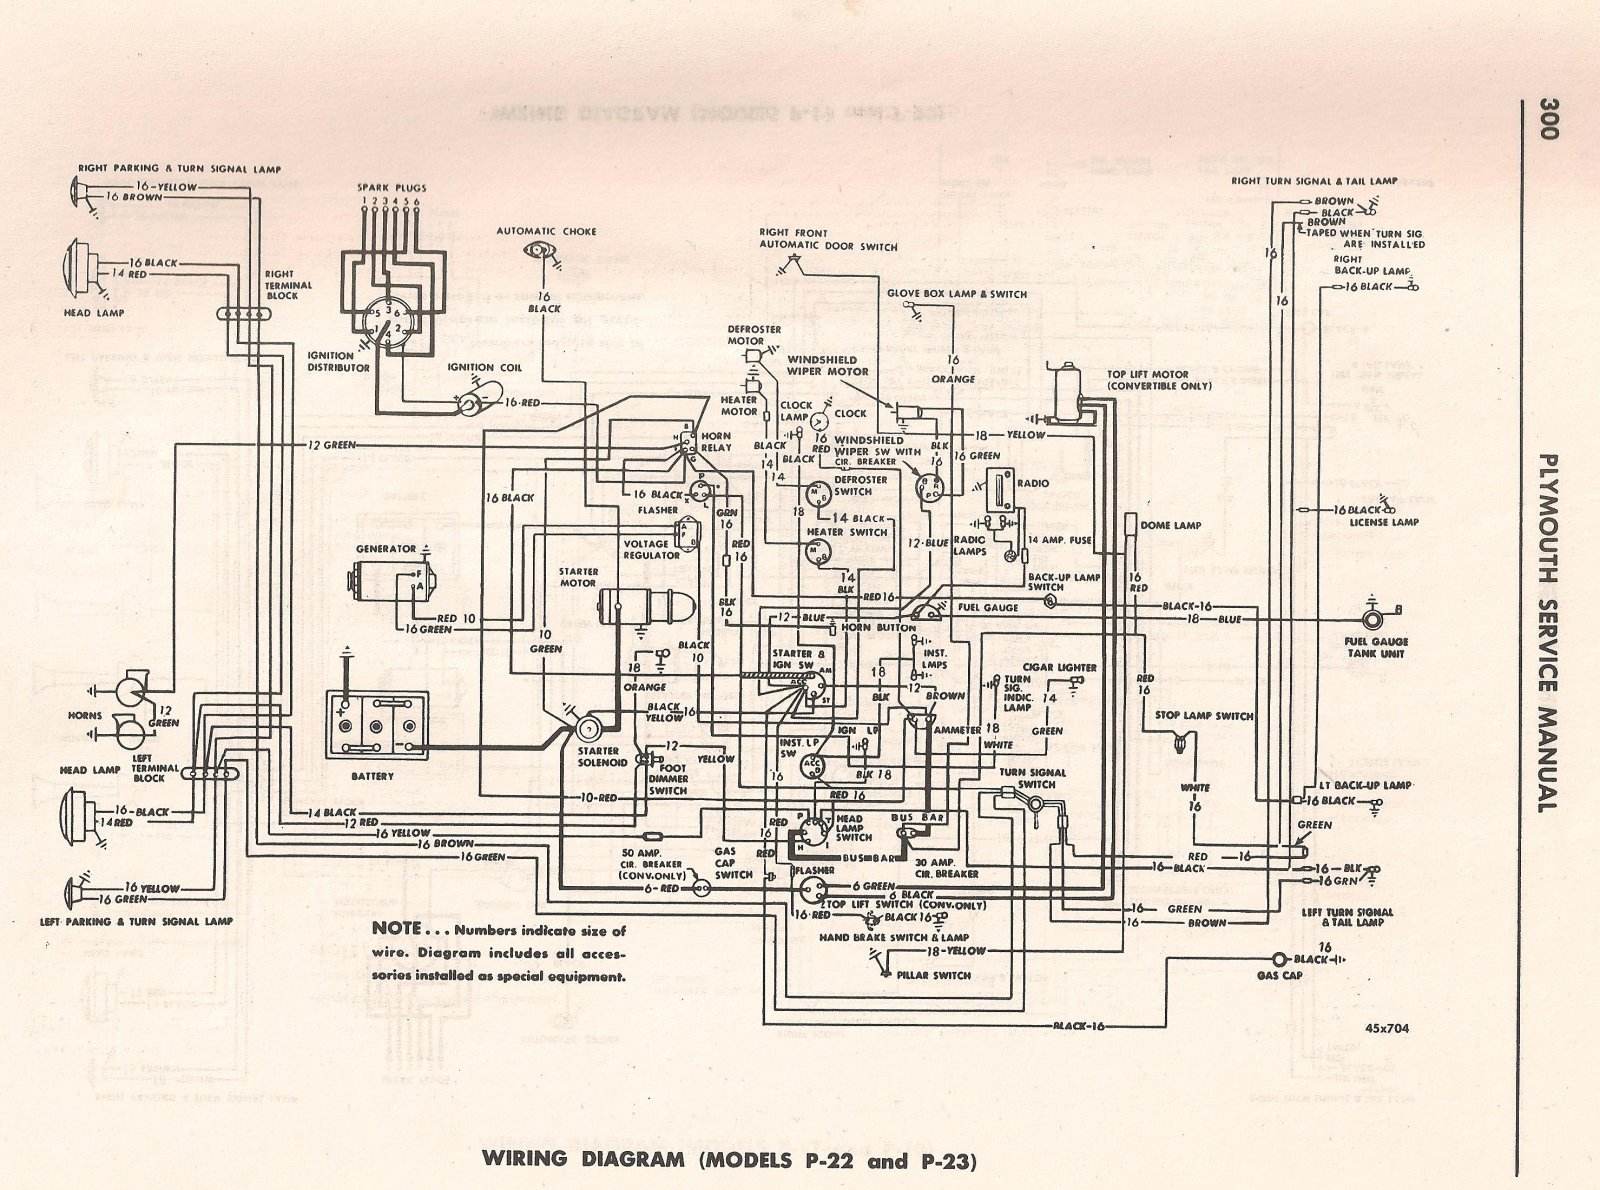 1951 plymouth wiring diagram 1951 oldsmobile wiring diagram free picture schematic hot rods - 1952 plymouth 6/12 volt? | page 3 | the h.a.m.b.